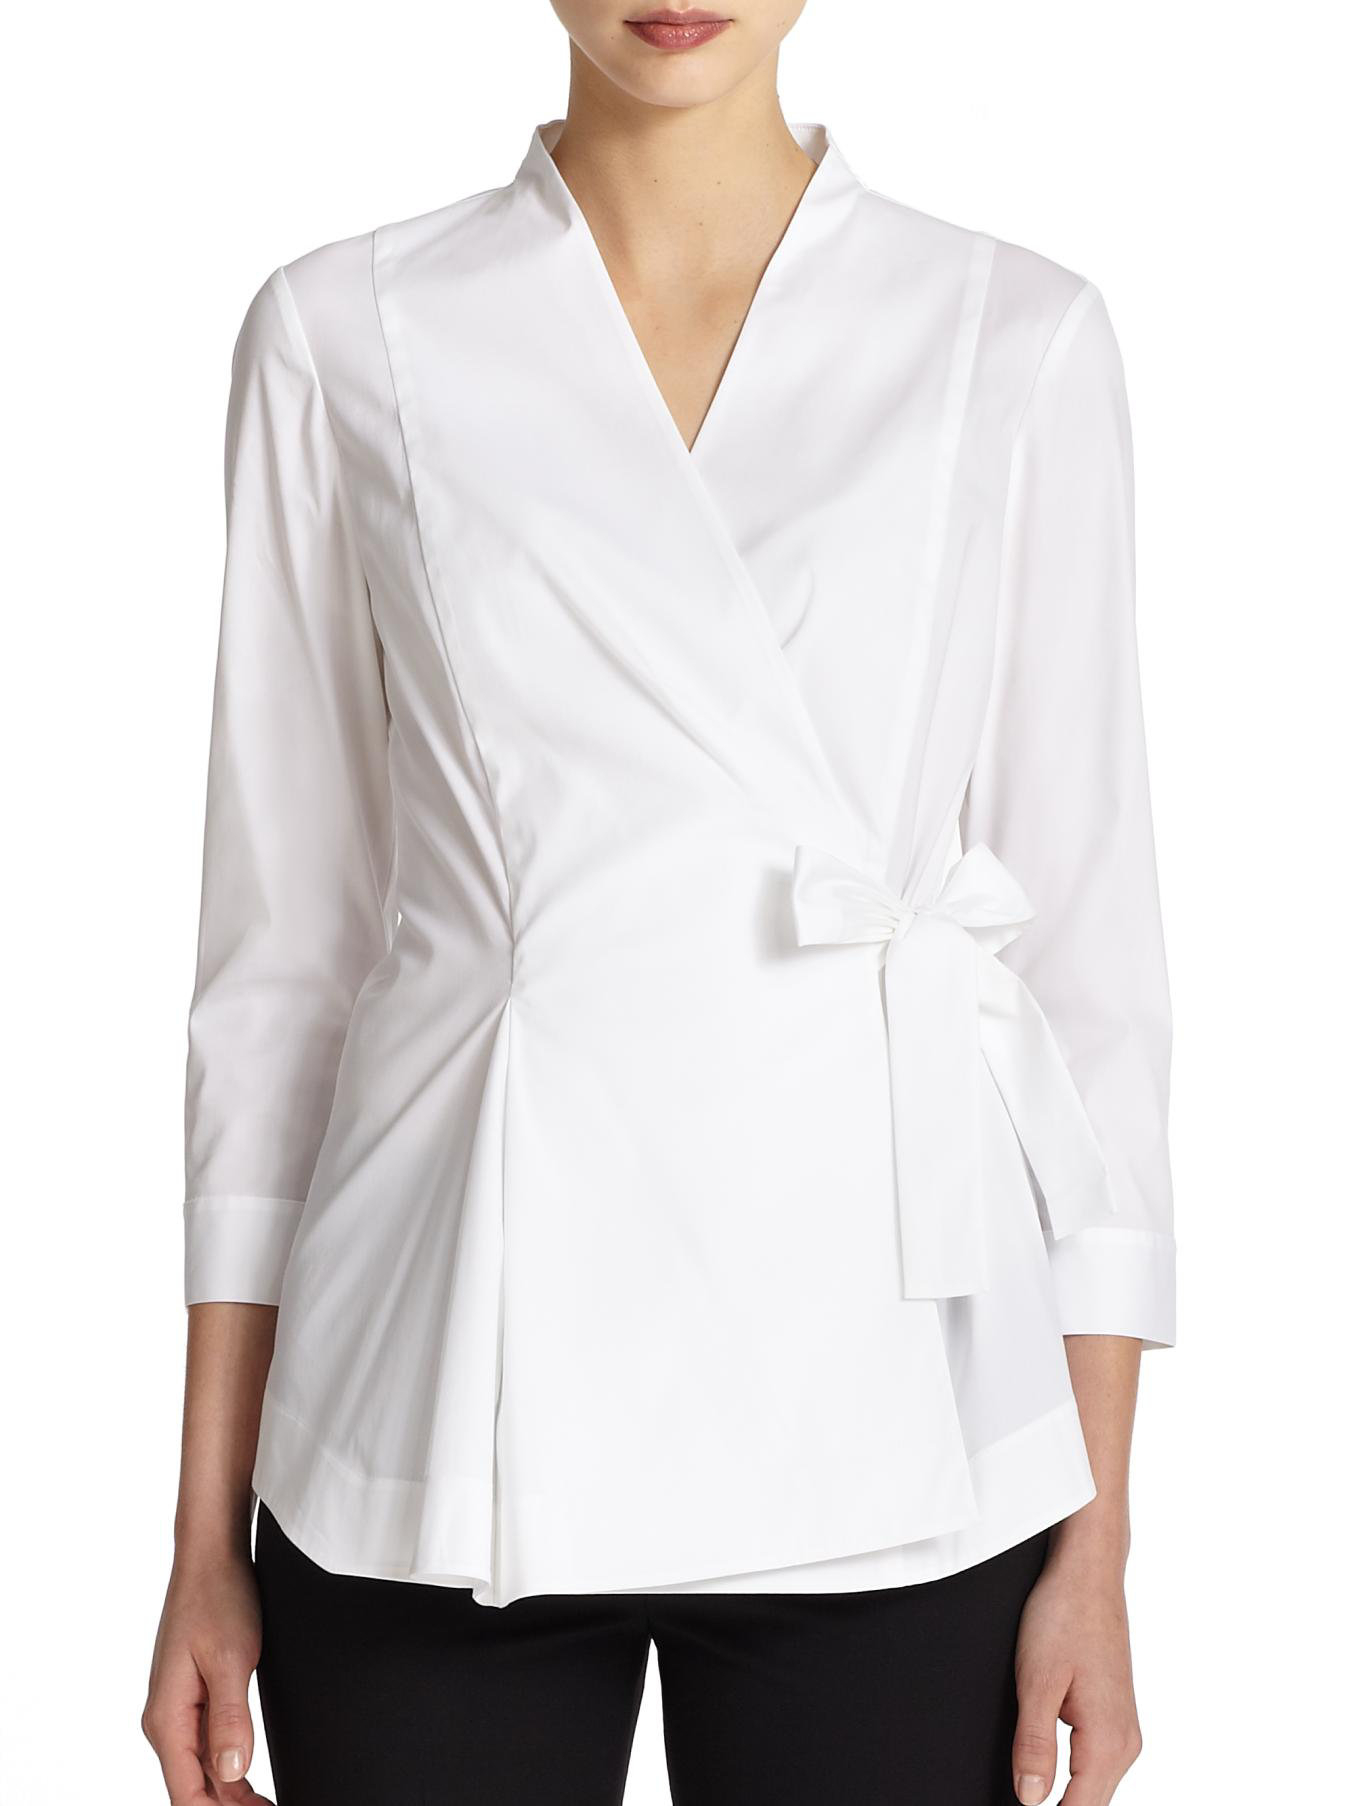 Lafayette 148 new york Stretch Cotton Wrap Blouse in White | Lyst